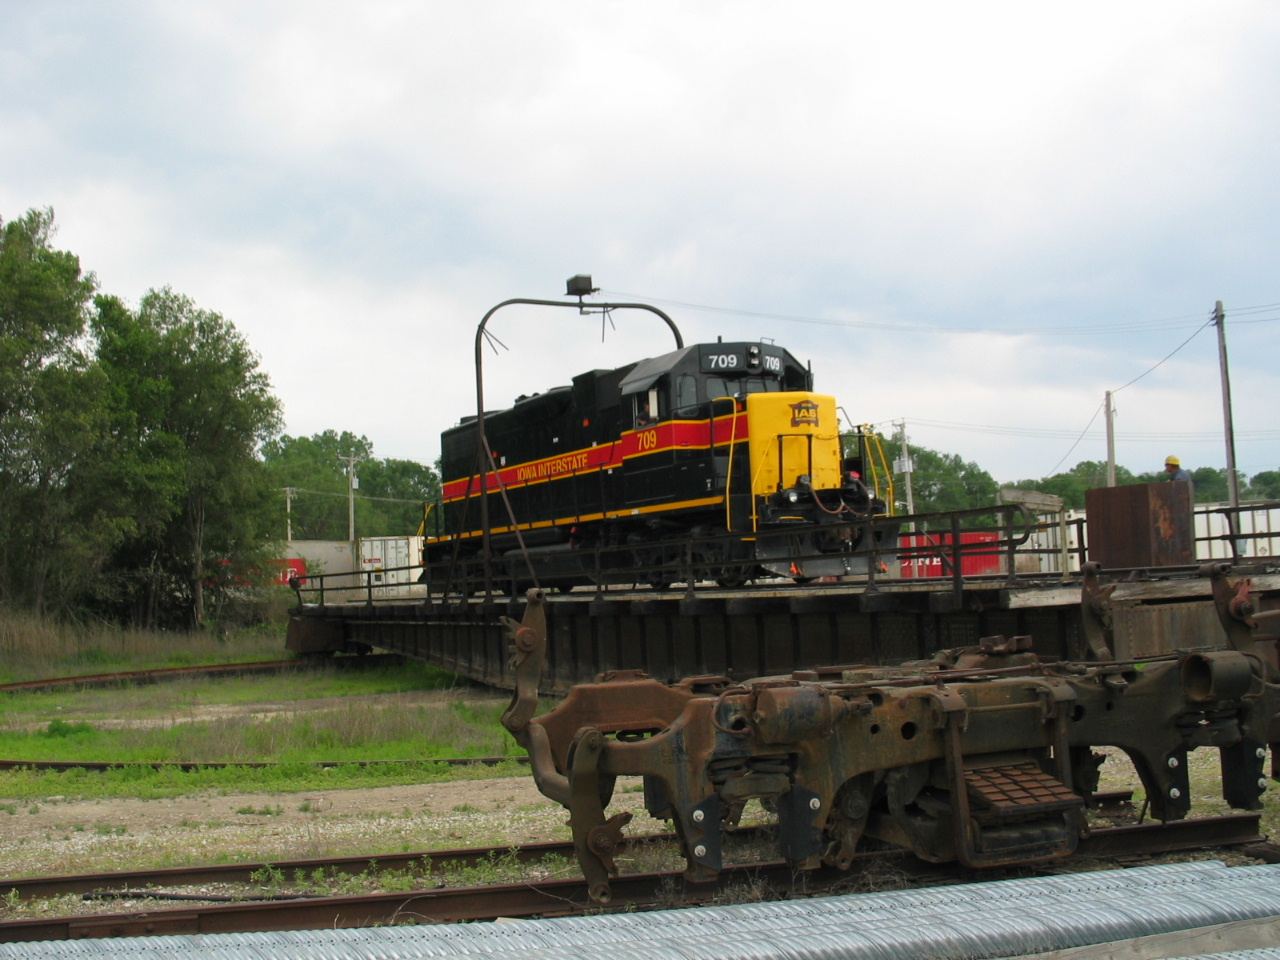 709 takes a spin on the Bluffs turntable, June 20, 2006.